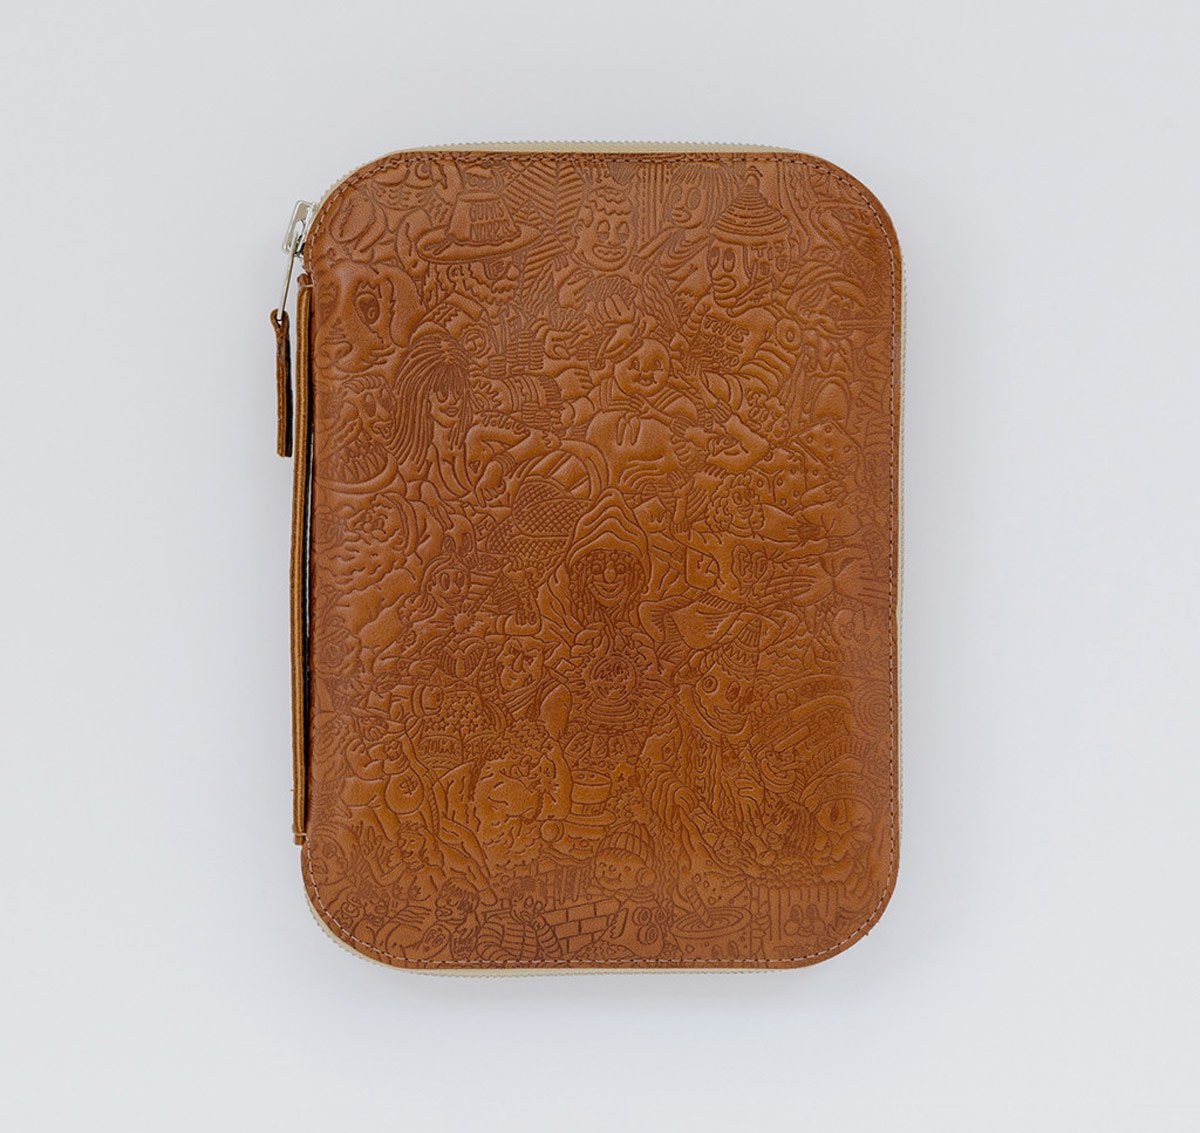 embossed-leather-case-by-this-is-ground-and-freegums-3